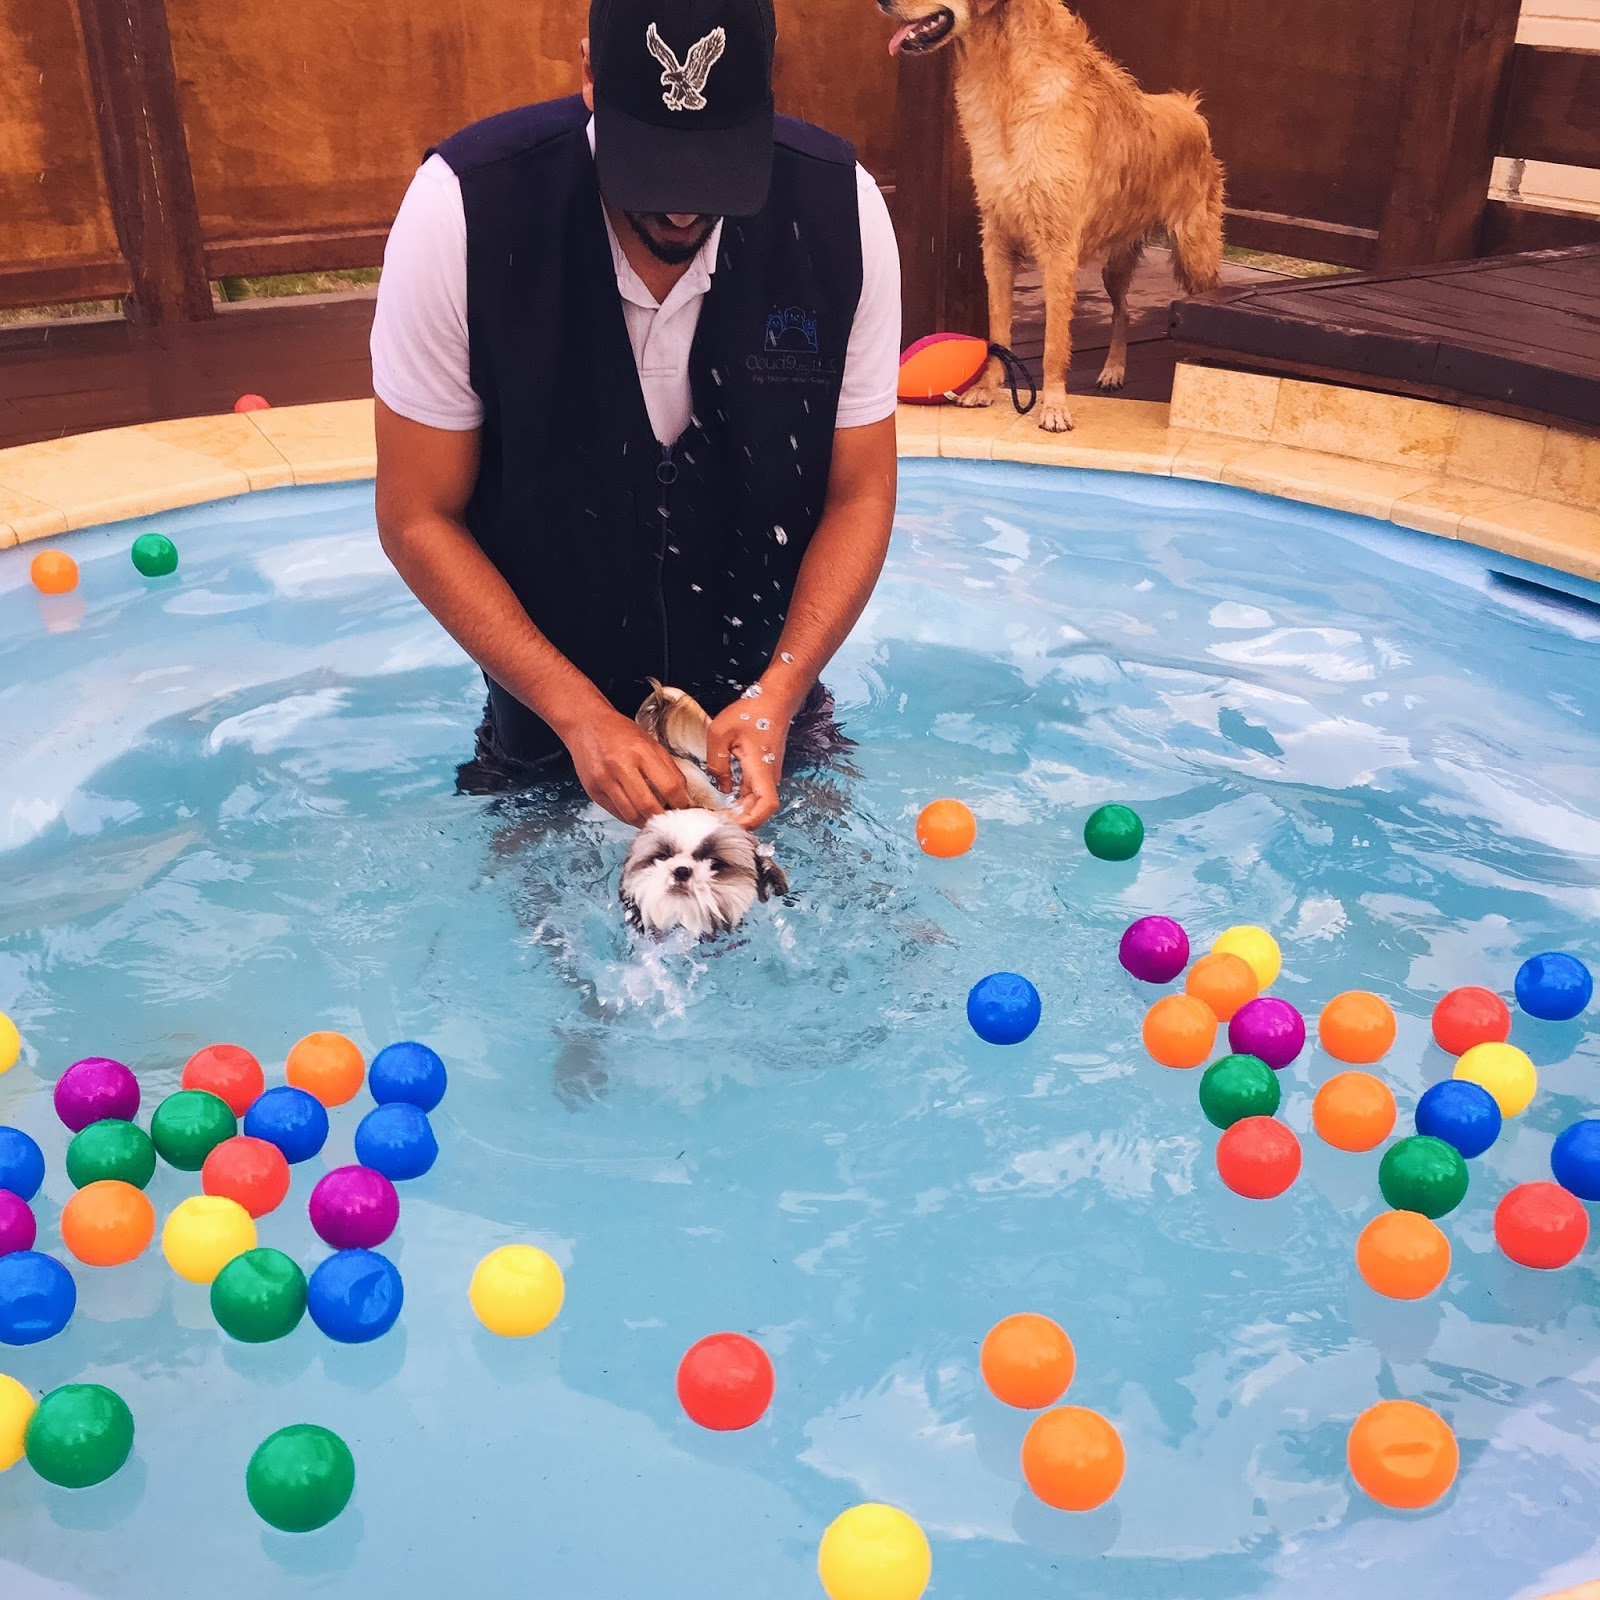 The Doggy Pool Party - Life in Excess Blog